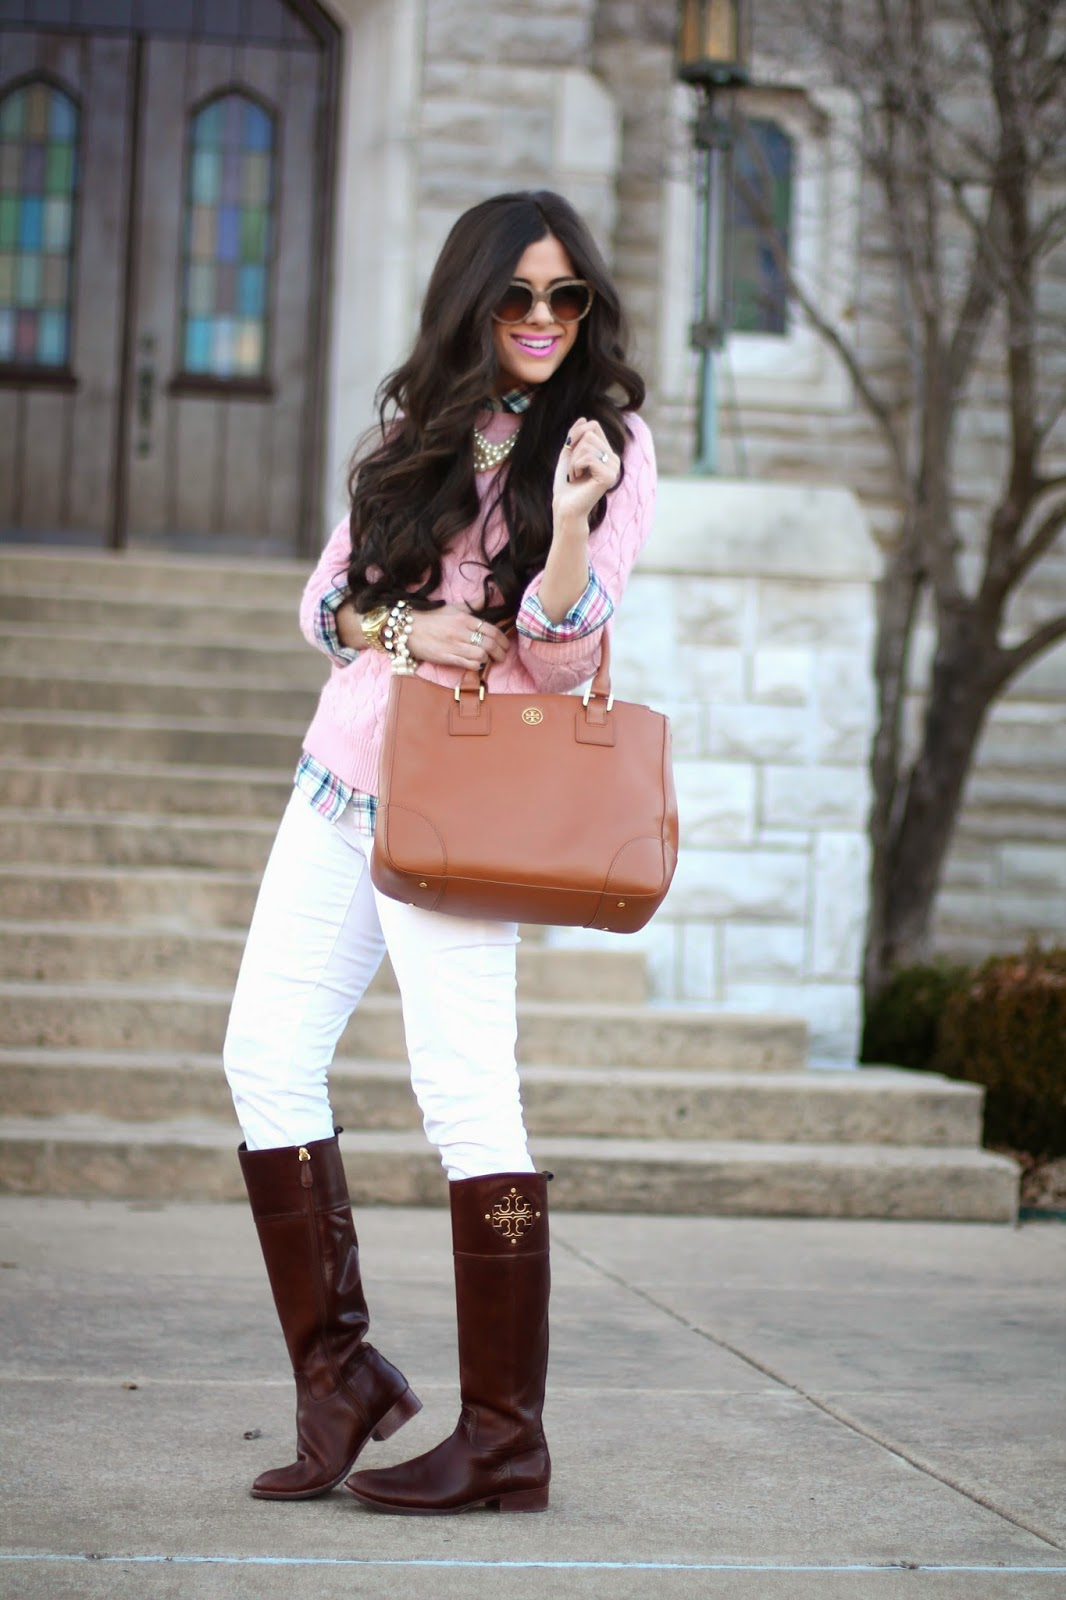 www.TheSweetestThingBlog.com, Emily Gemma, Spring Fashion, Pinterest Spring Fashion, Tory Burch Robinson Tote, Tory Burch Kiernan Boots, PRada sunglasses, David Yurman Ring, David Yurman double x, White pants in winter